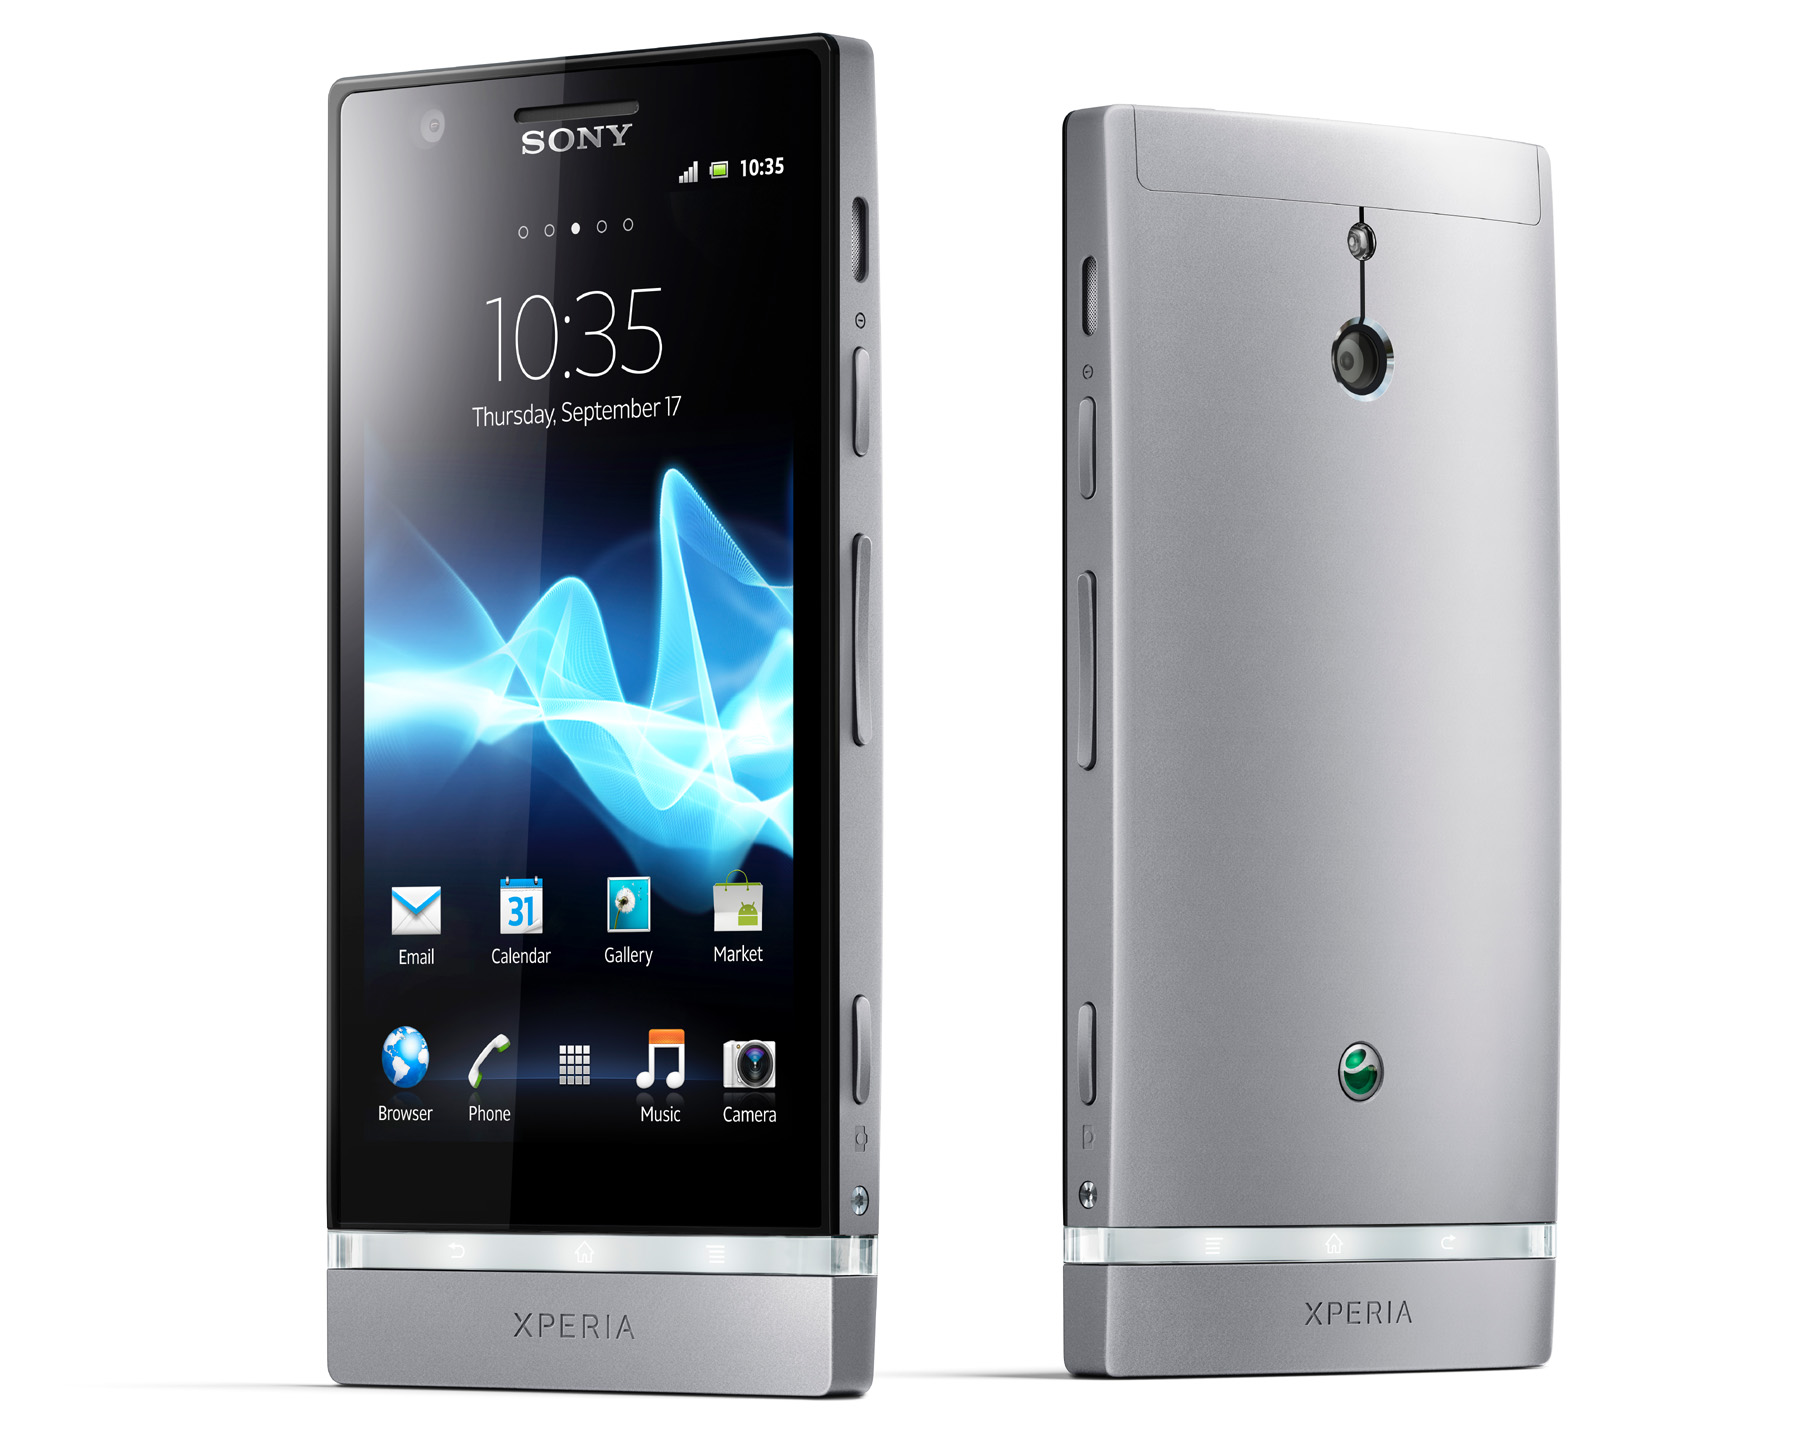 The Xperia P will launch with Android 2.3 onboard, with Sony promising